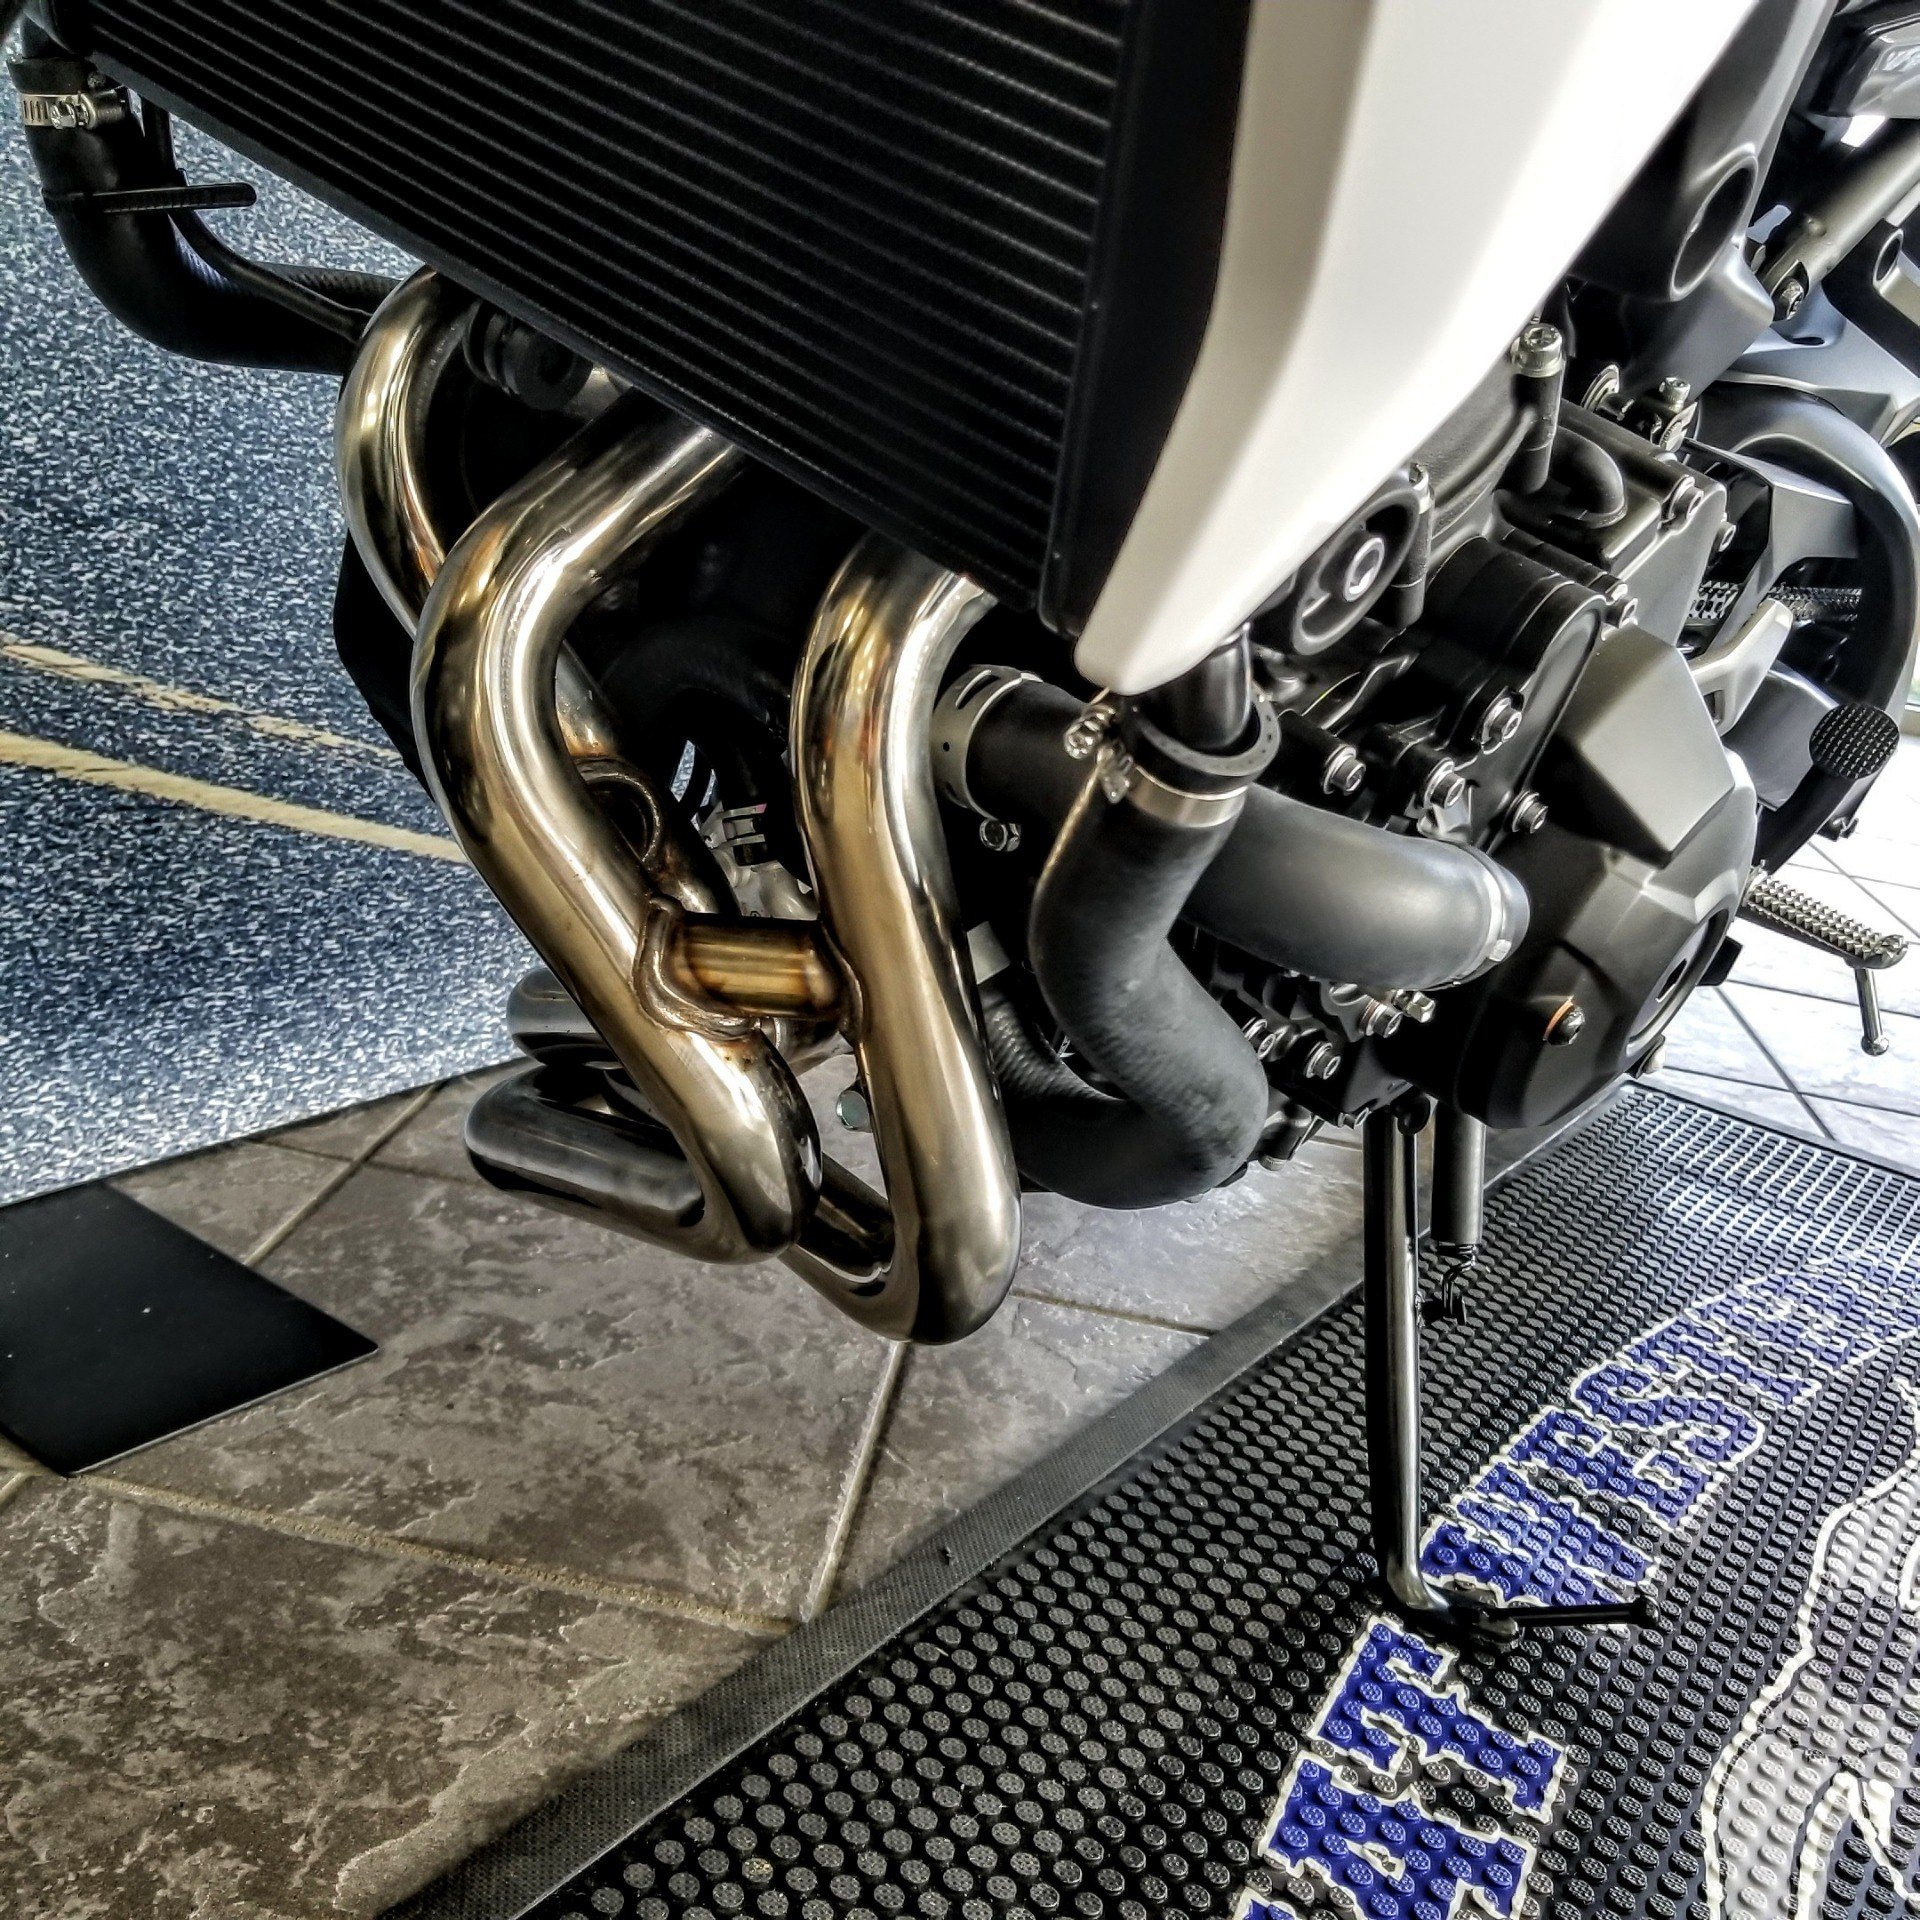 2019 Yamaha Tracer 900 in Hickory, North Carolina - Photo 11